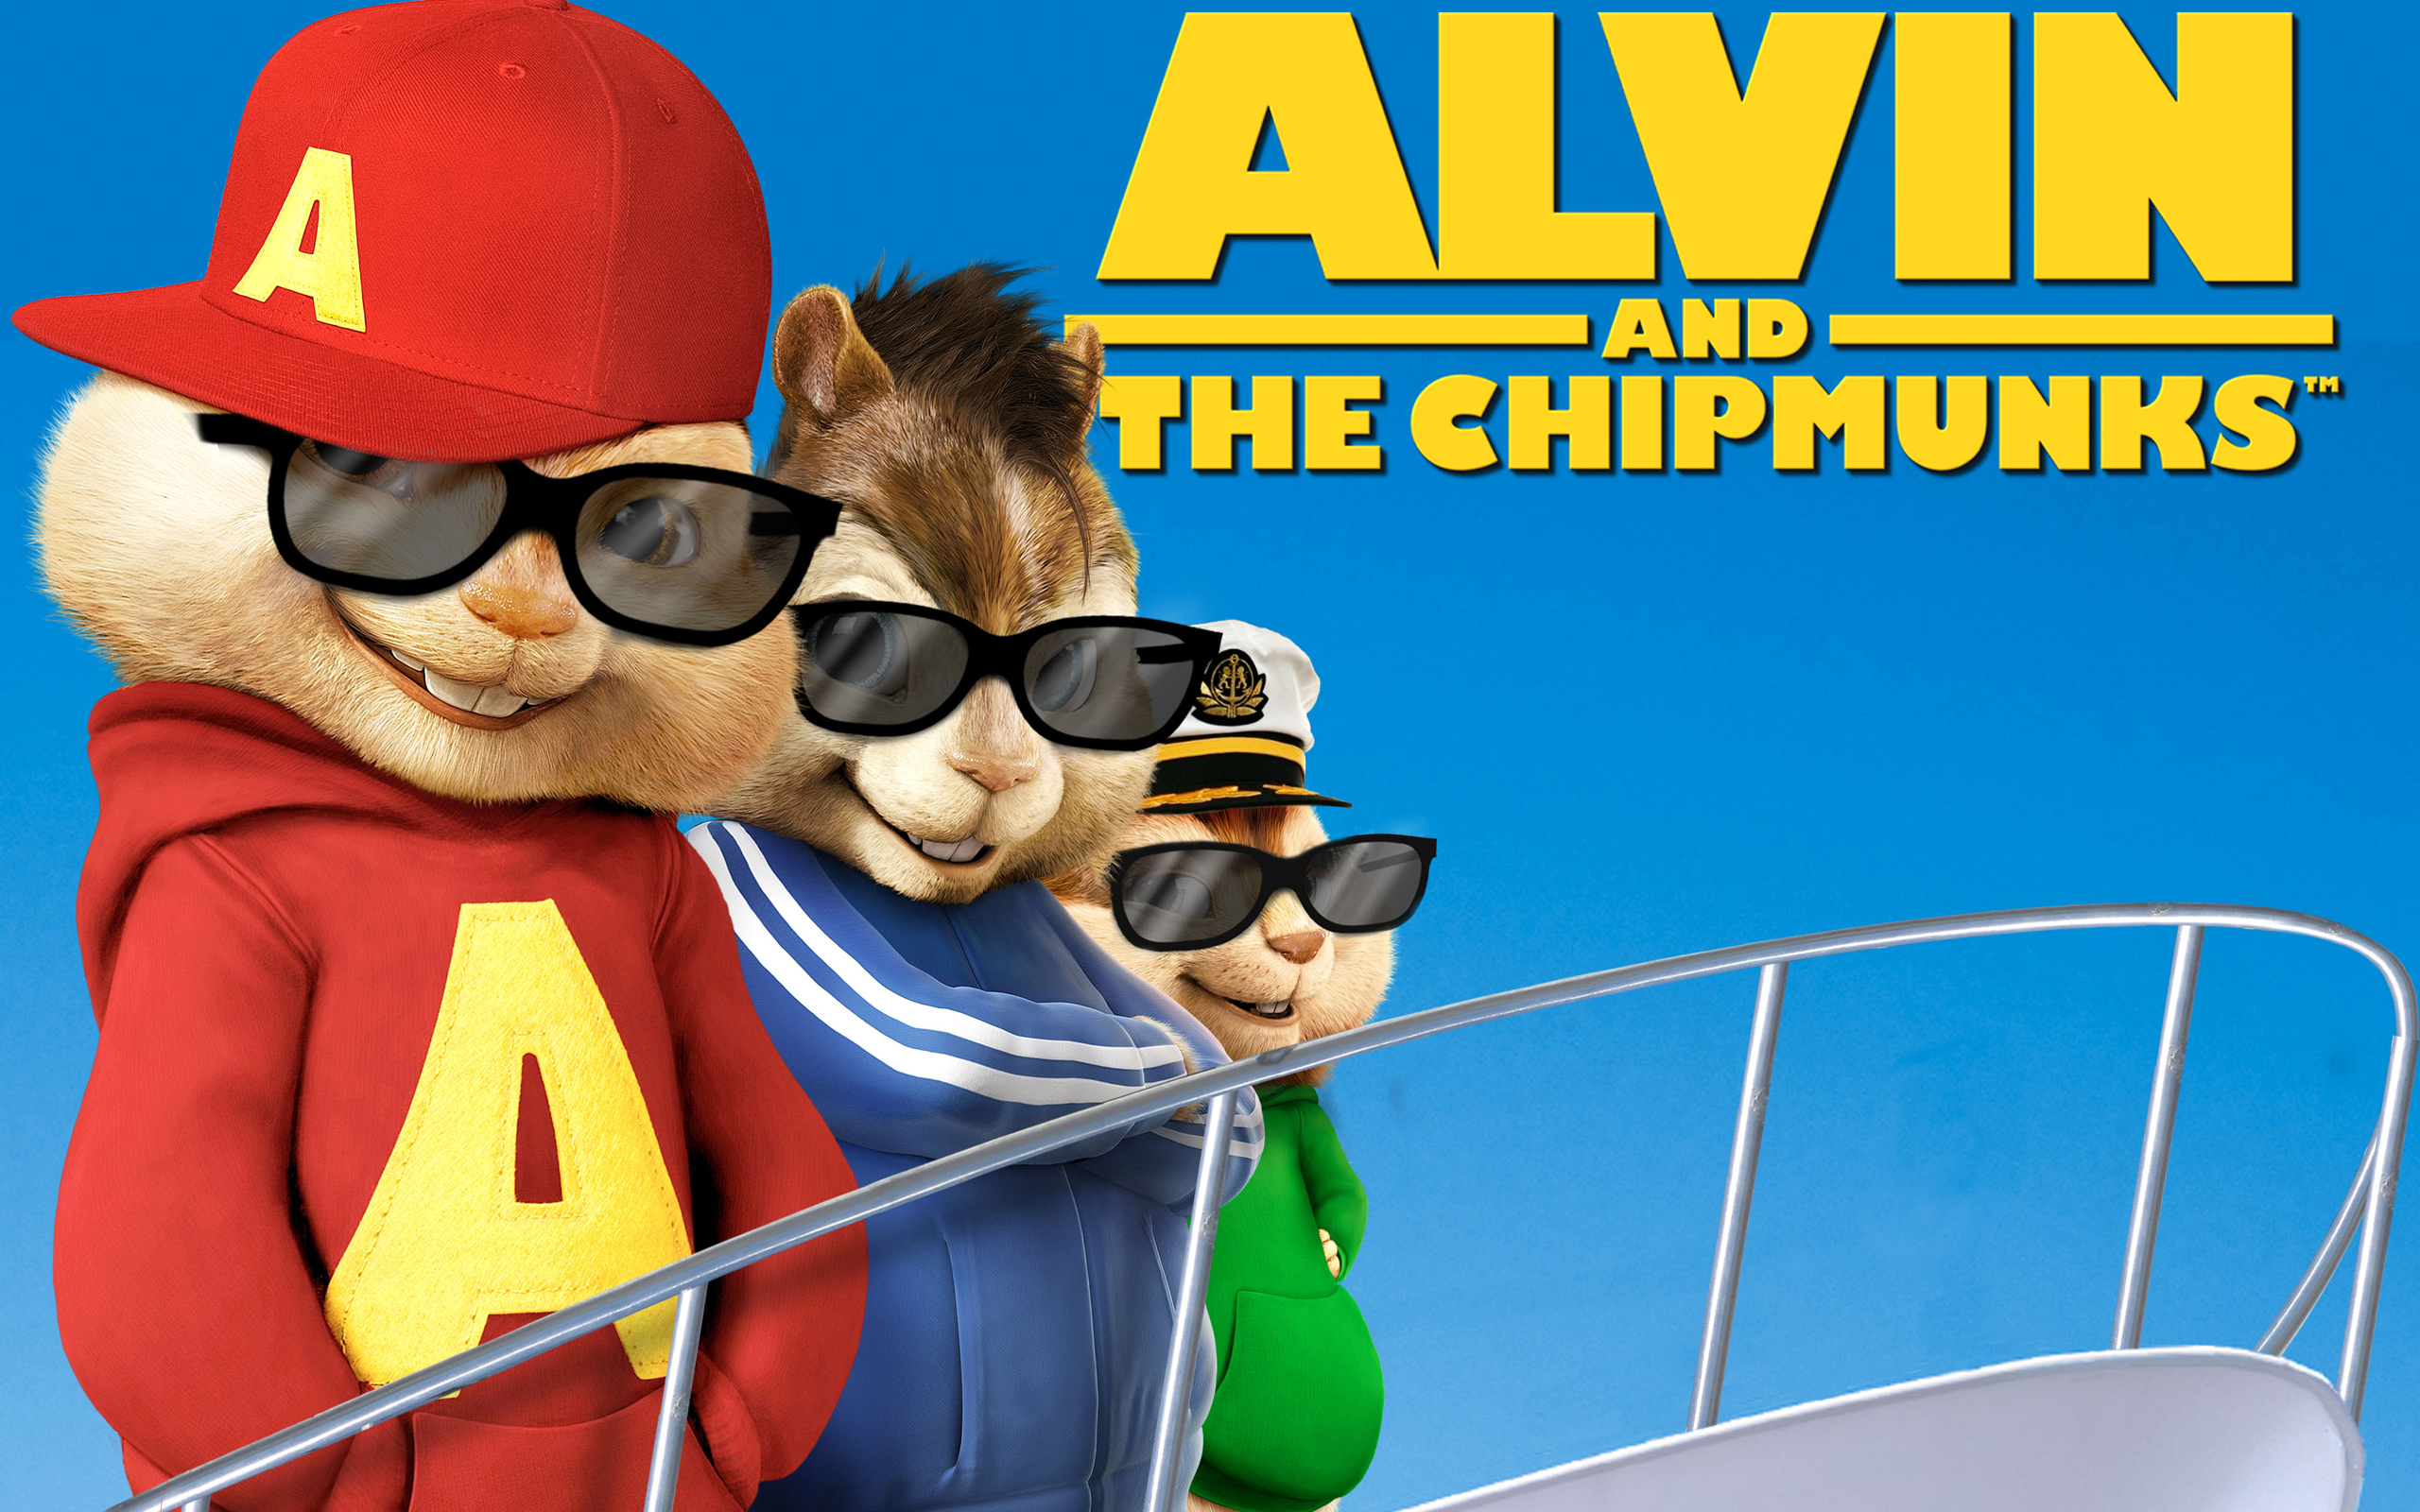 alvin and the chipmunks hd wallpaper full hd pictures